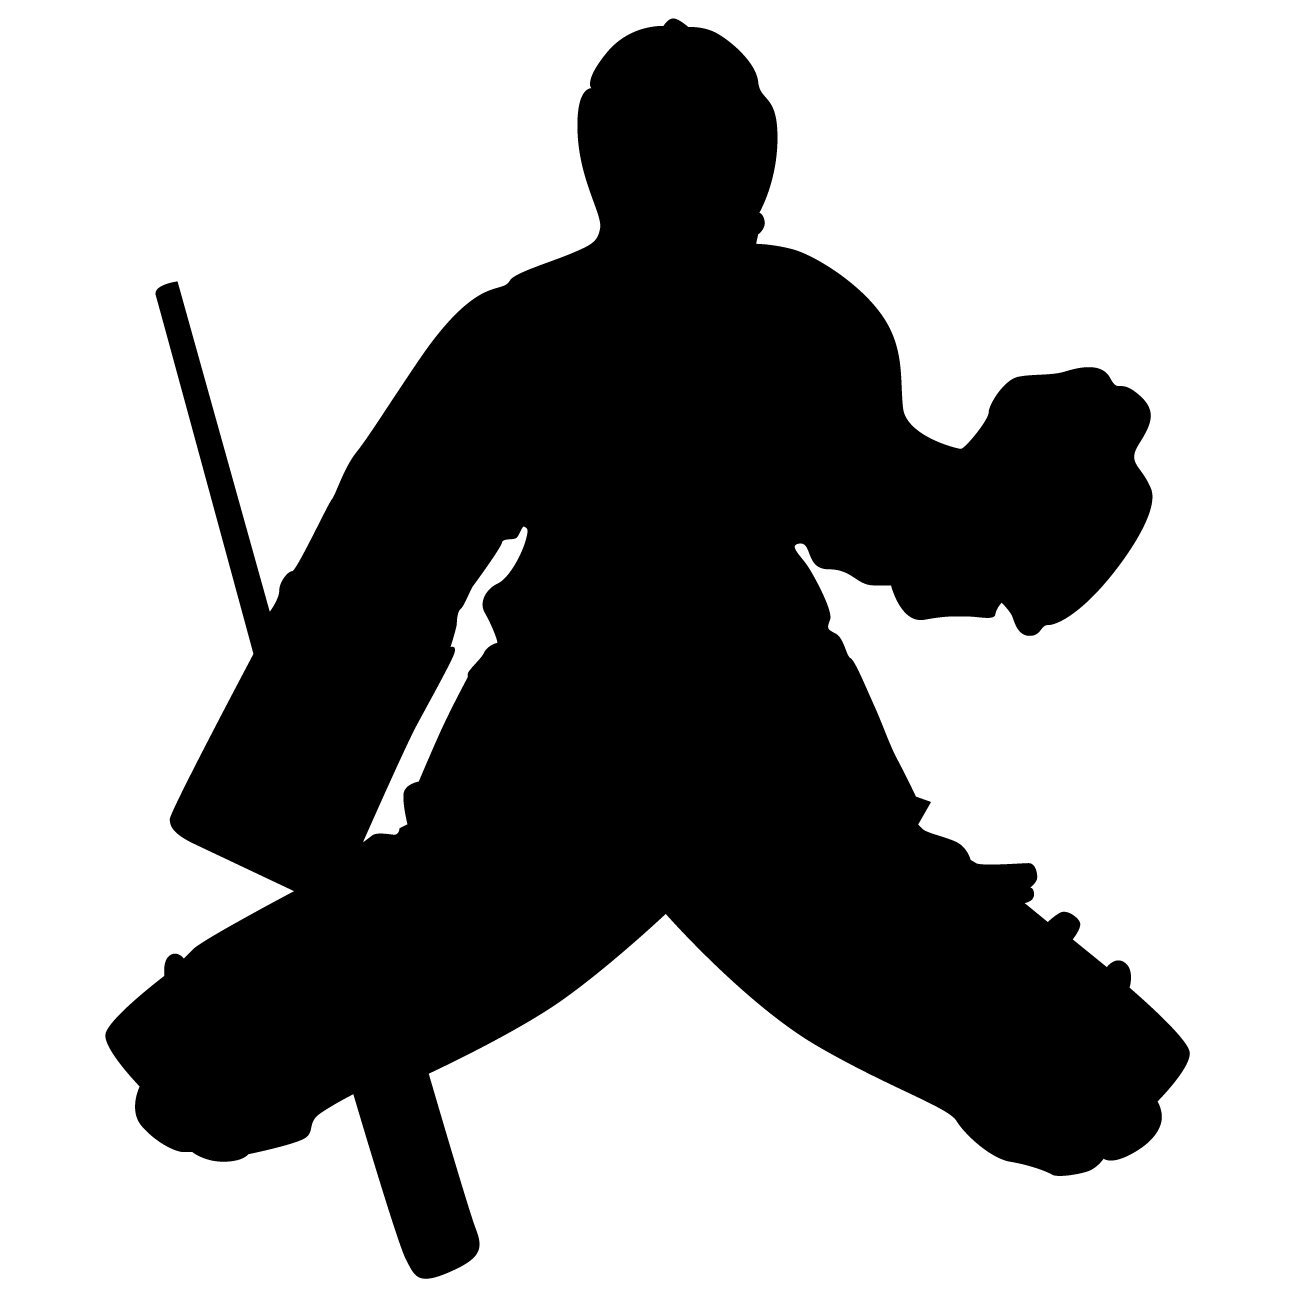 Hockey Wall Sticker Decal 6 - Decal Stickers and Mural for Kids Boys Girls Room and Bedroom. Sport Wall Art for Home Decor and Decoration - Ice Hockey Player Silhouette Mural